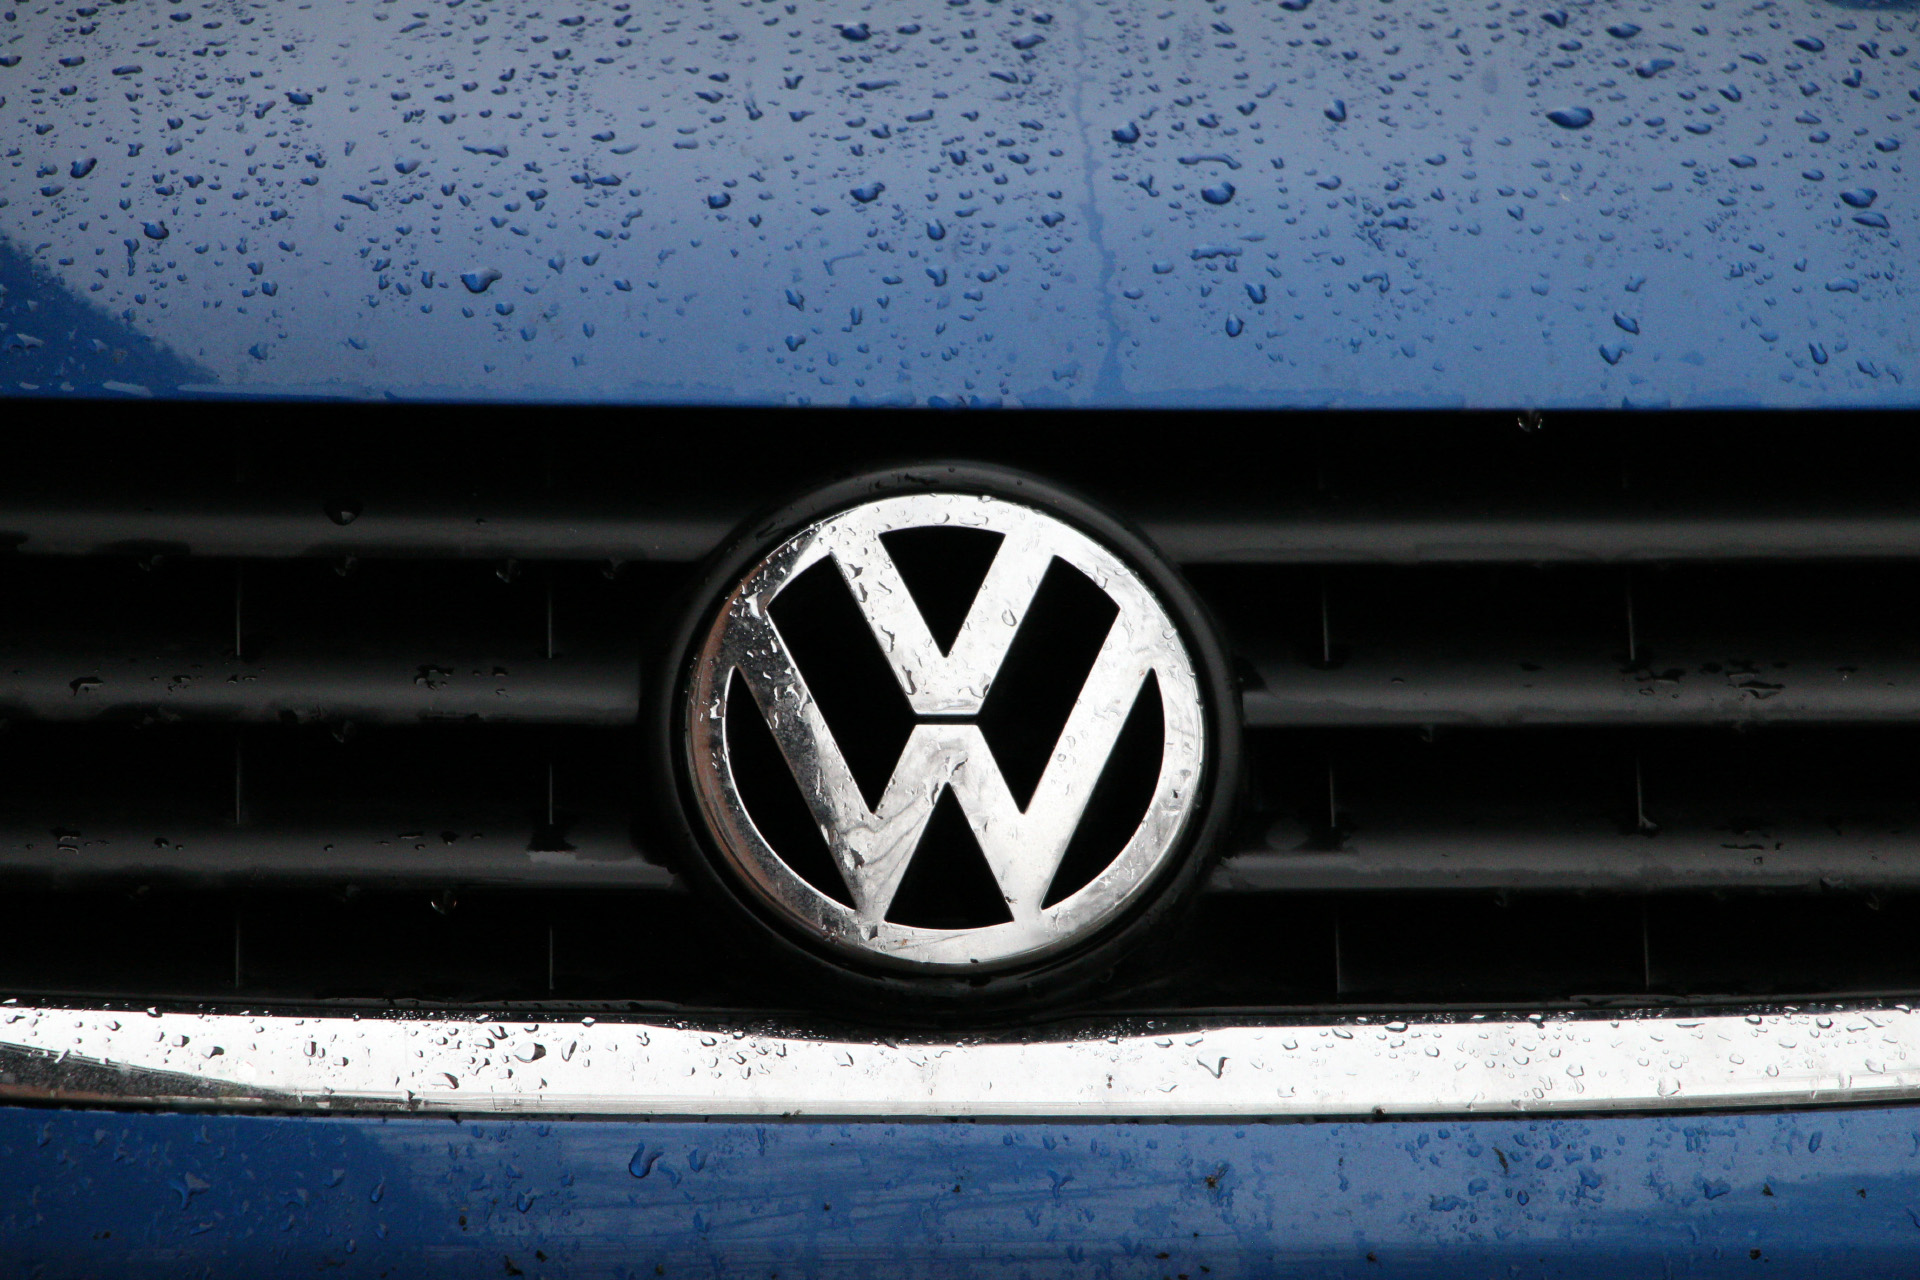 Vw Specialist Near Me >> Specialist Vw Service Repair Diagnostics Centre In Burnley Nelson